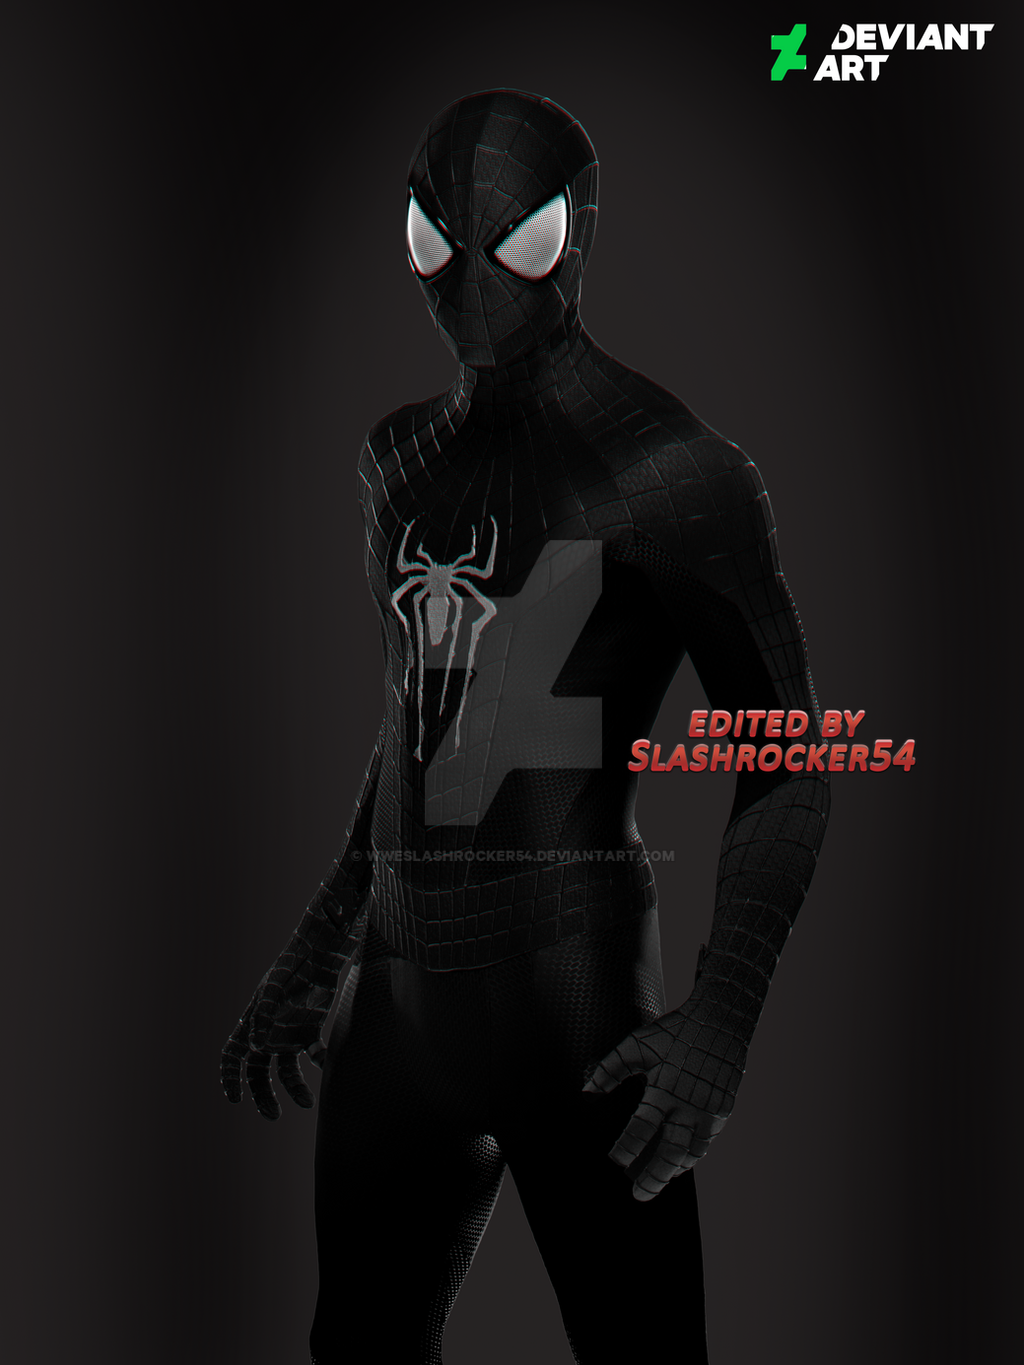 The amazing spider man black suit - photo#2